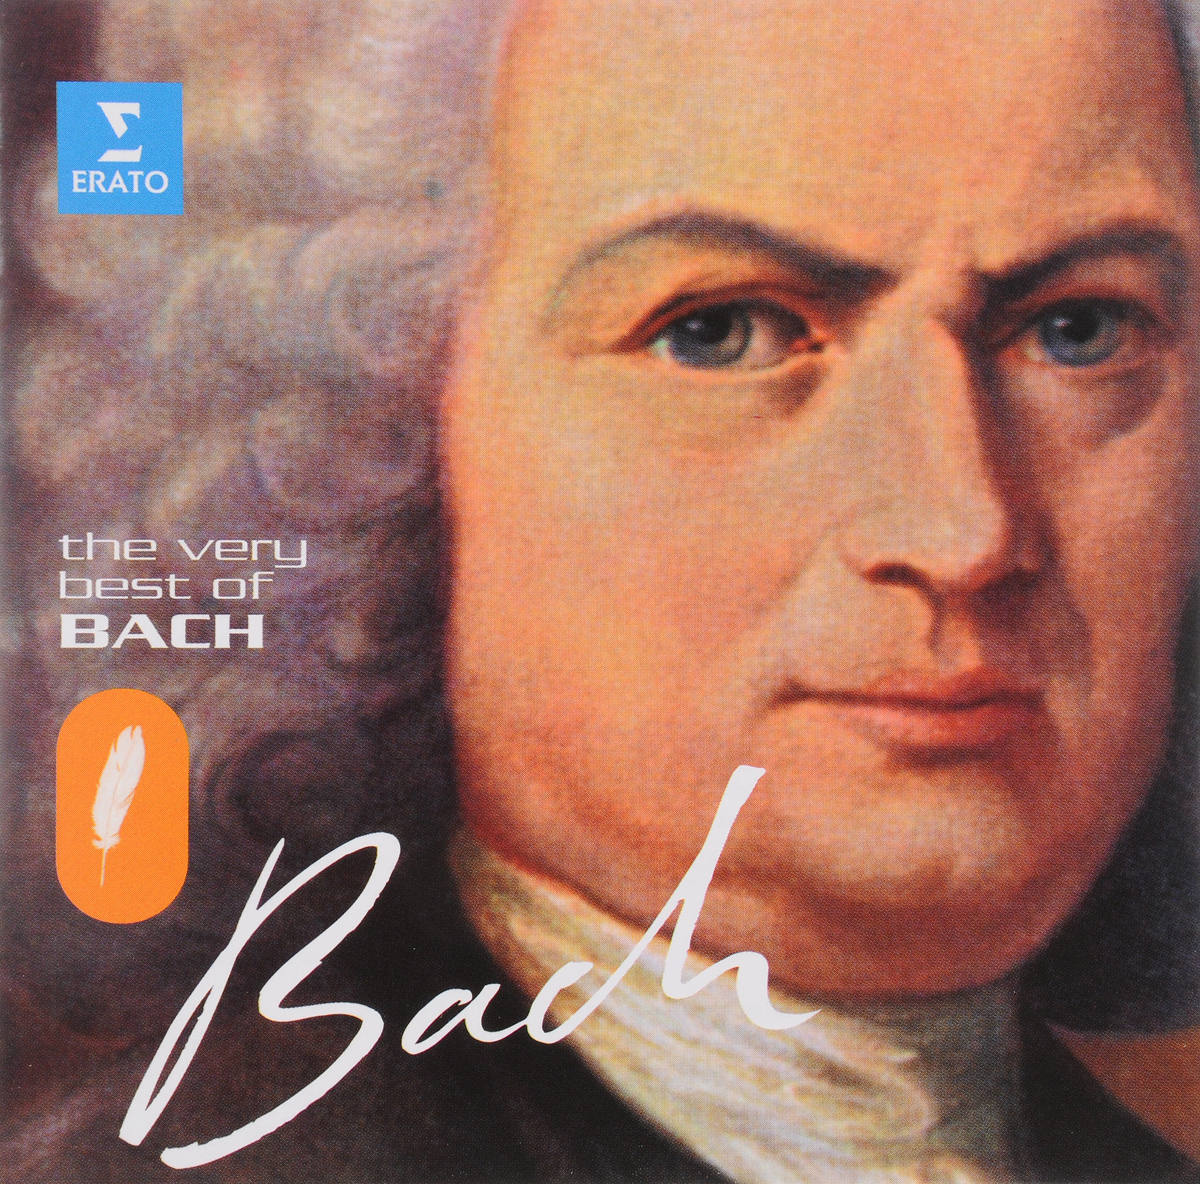 VARIOUS ARTISTS. THE VERY BEST OF BACH виниловая пластинка various artists john morales presents the m